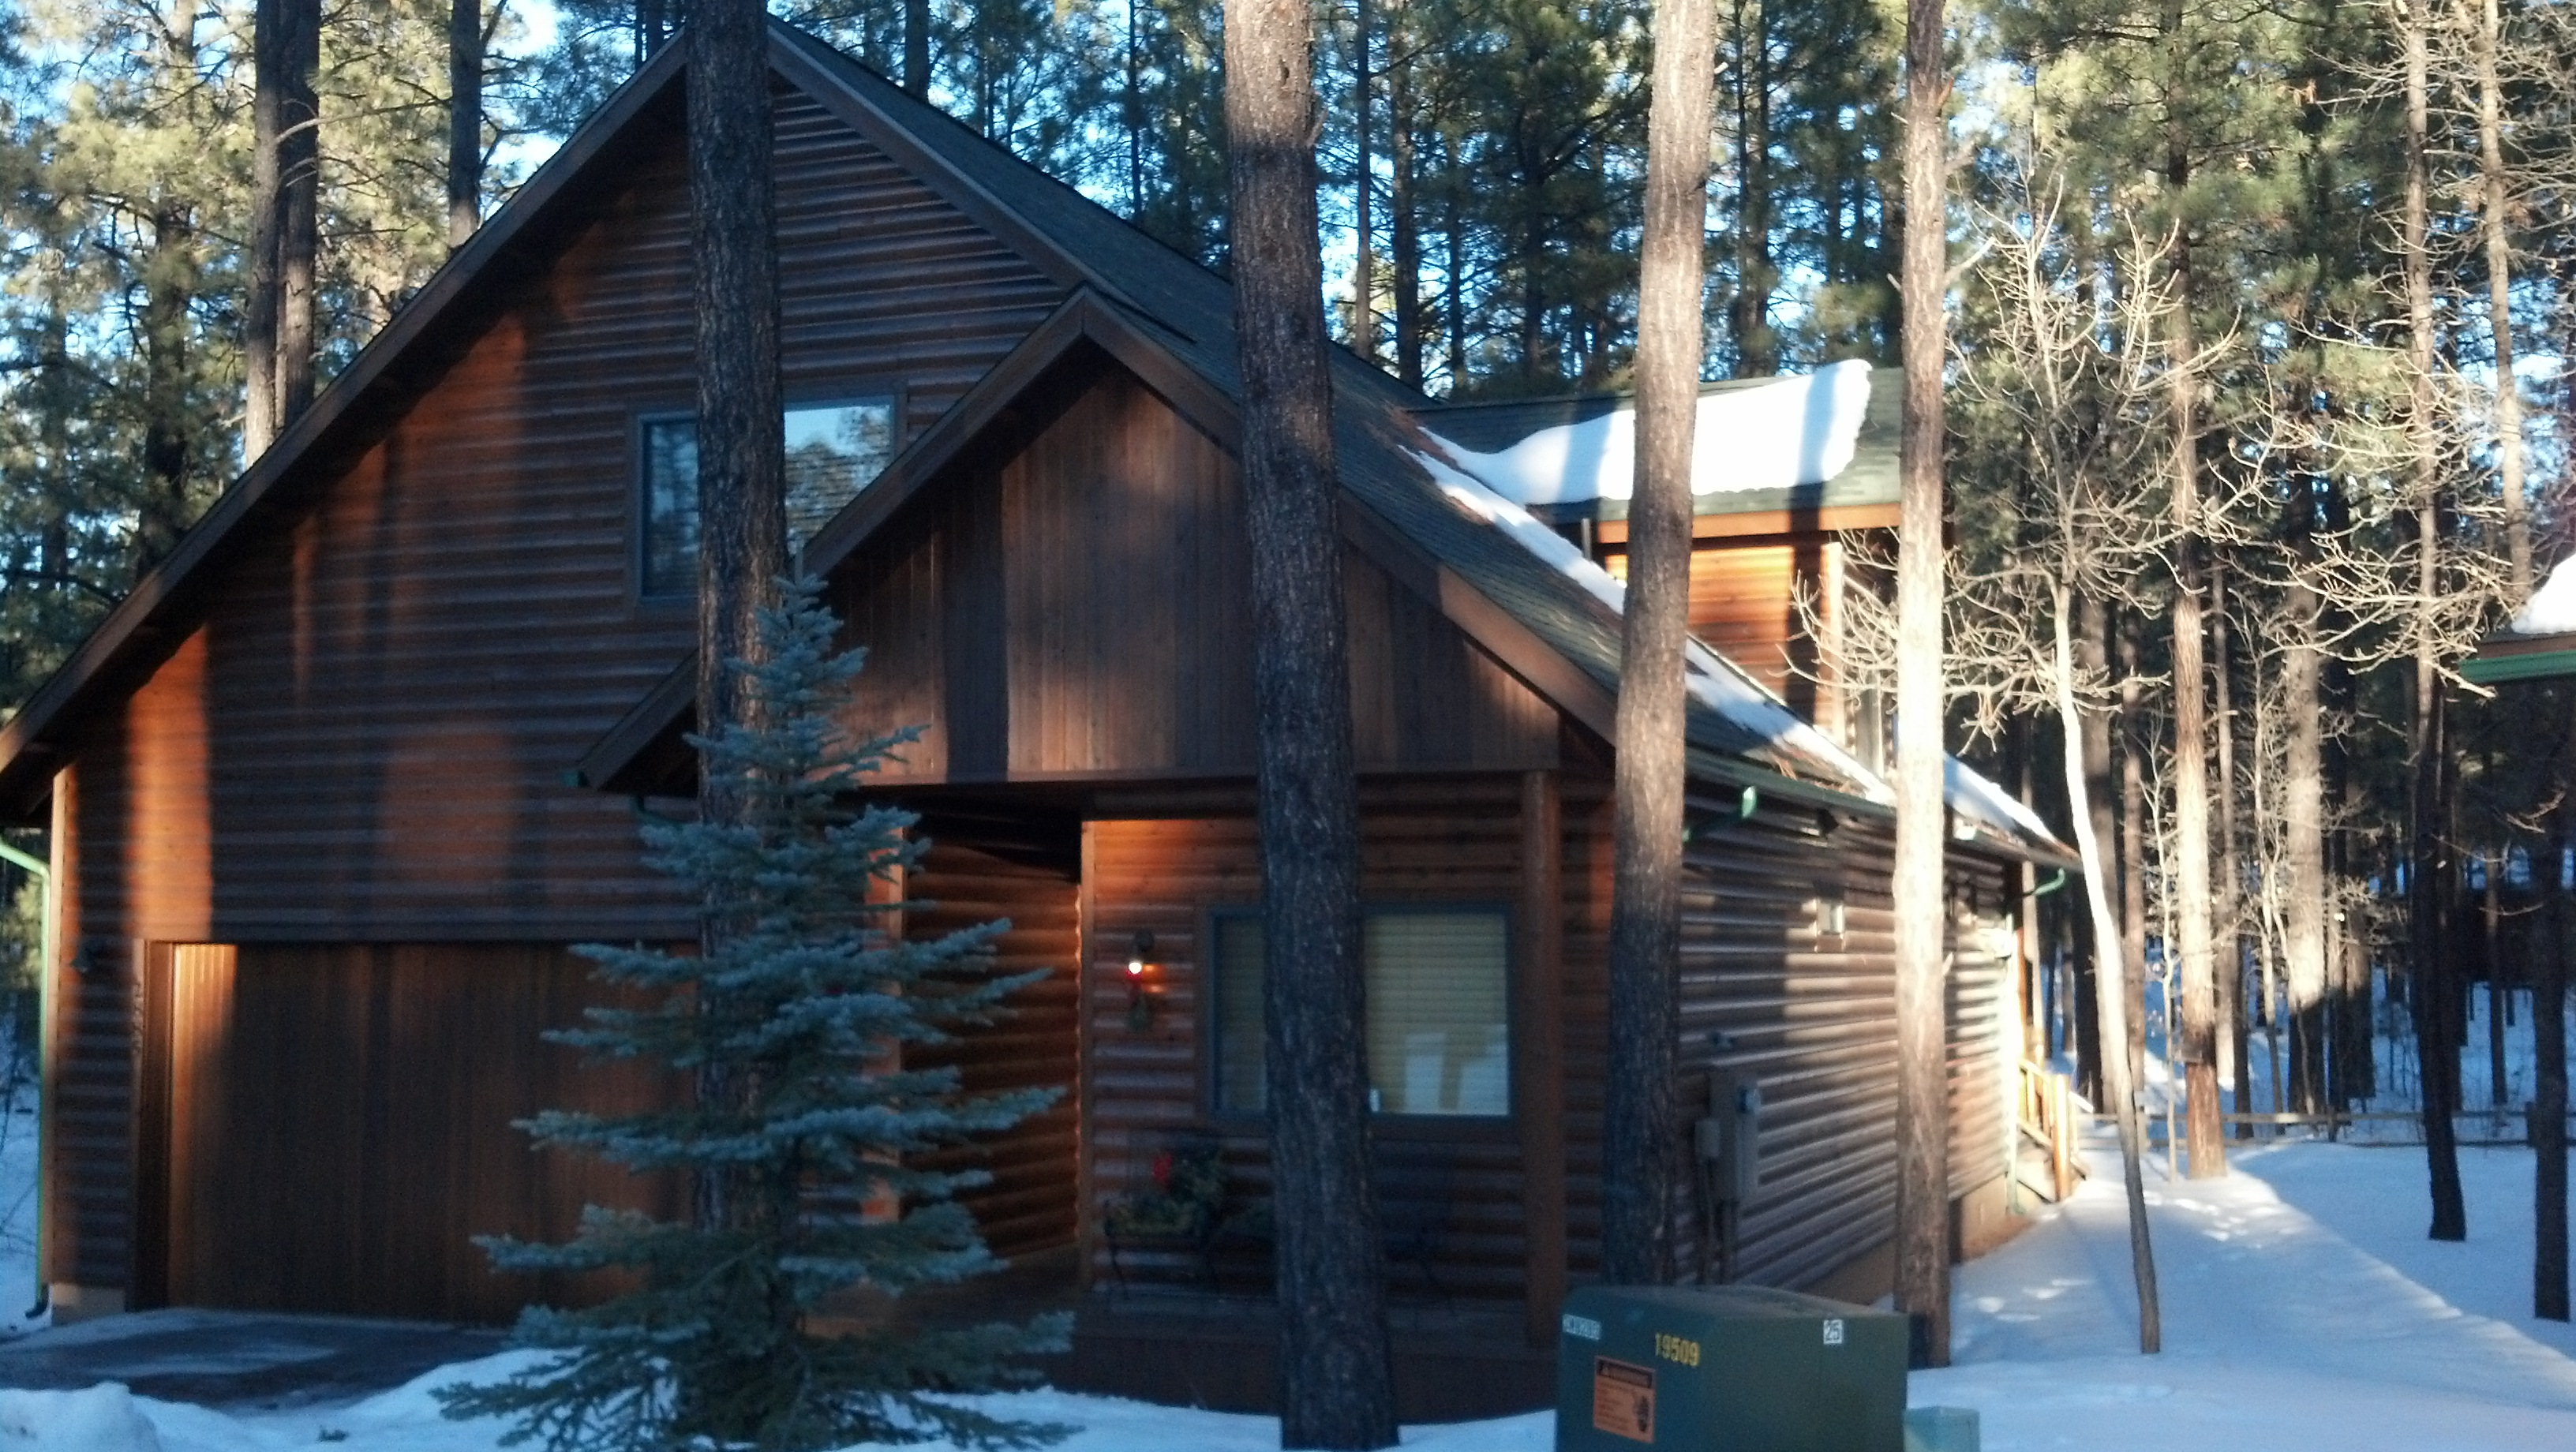 flagstaff park pet drobek az cabins craigslist info munds in rentals friendly cabin